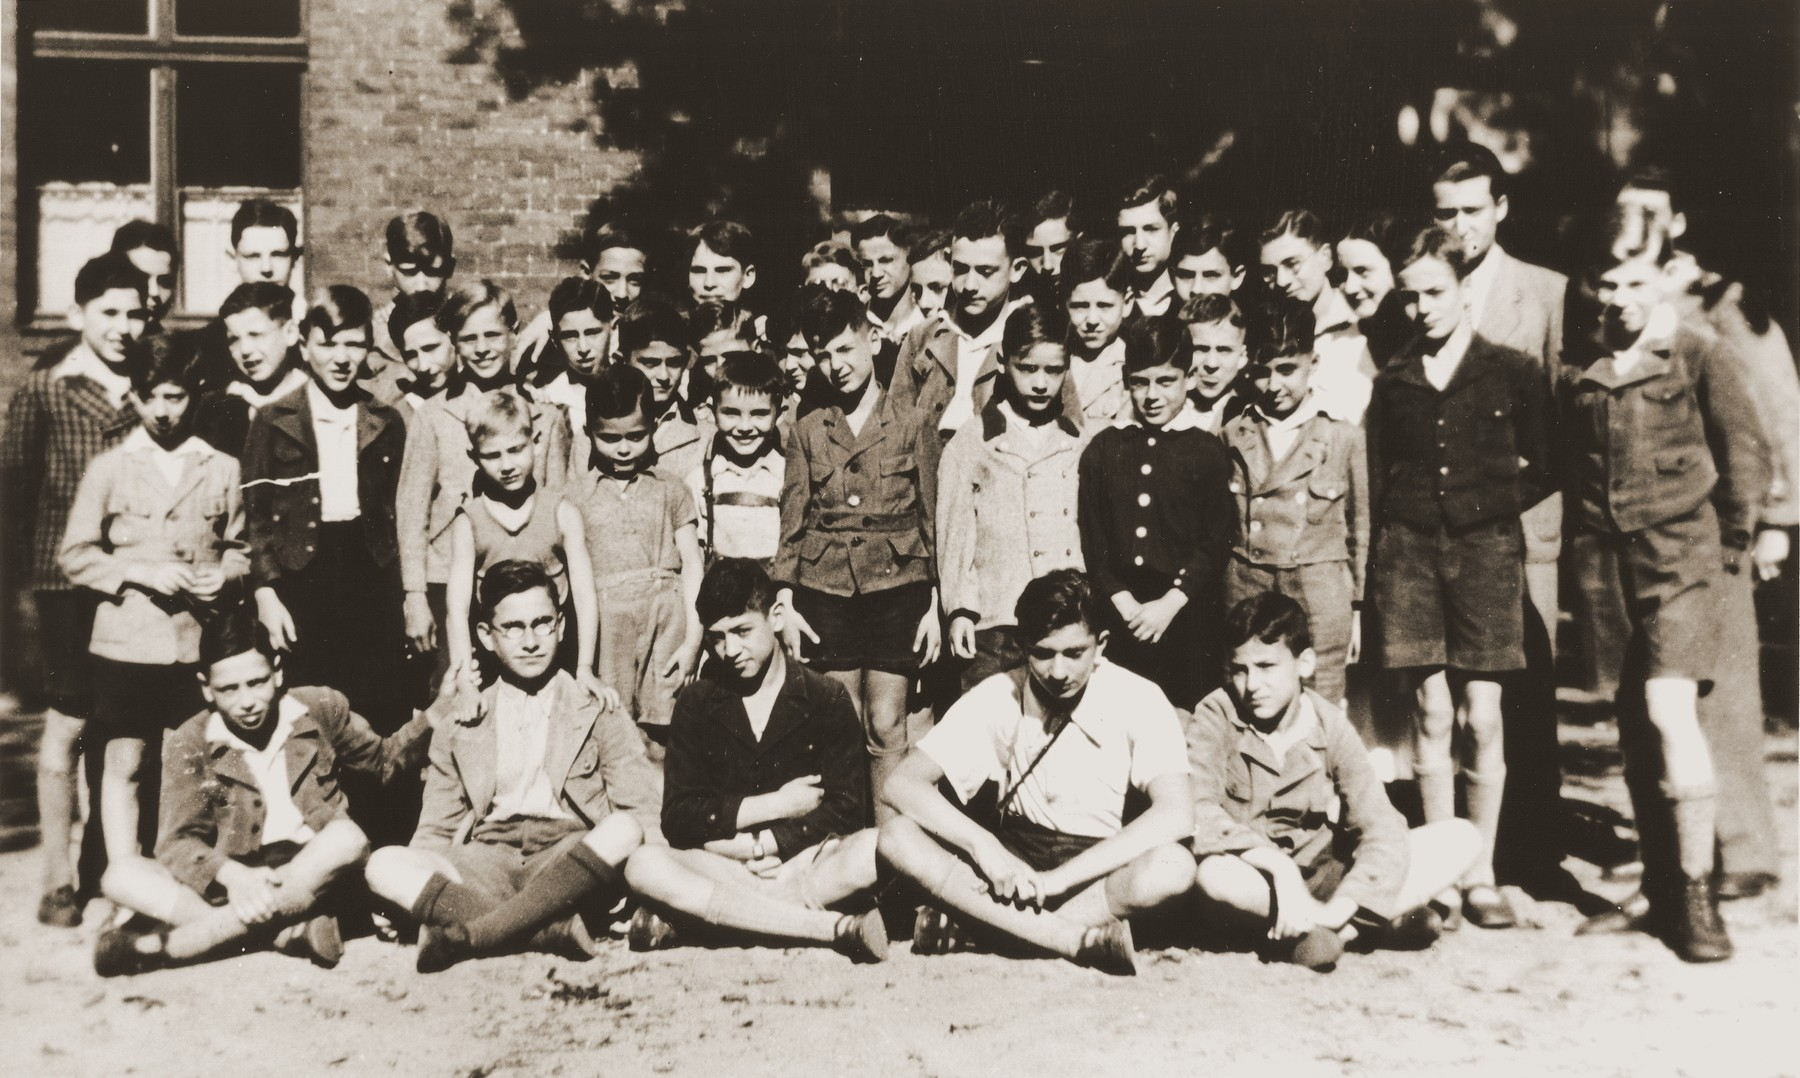 The children living at the Baruch Auerbach Jewish orphanage in Berlin.  Ralph Moratz is standing directly behind the second boy in first row from left and Wolfgang Grajonjz is standing directly next to Ralph on the right (his head is turned downward).